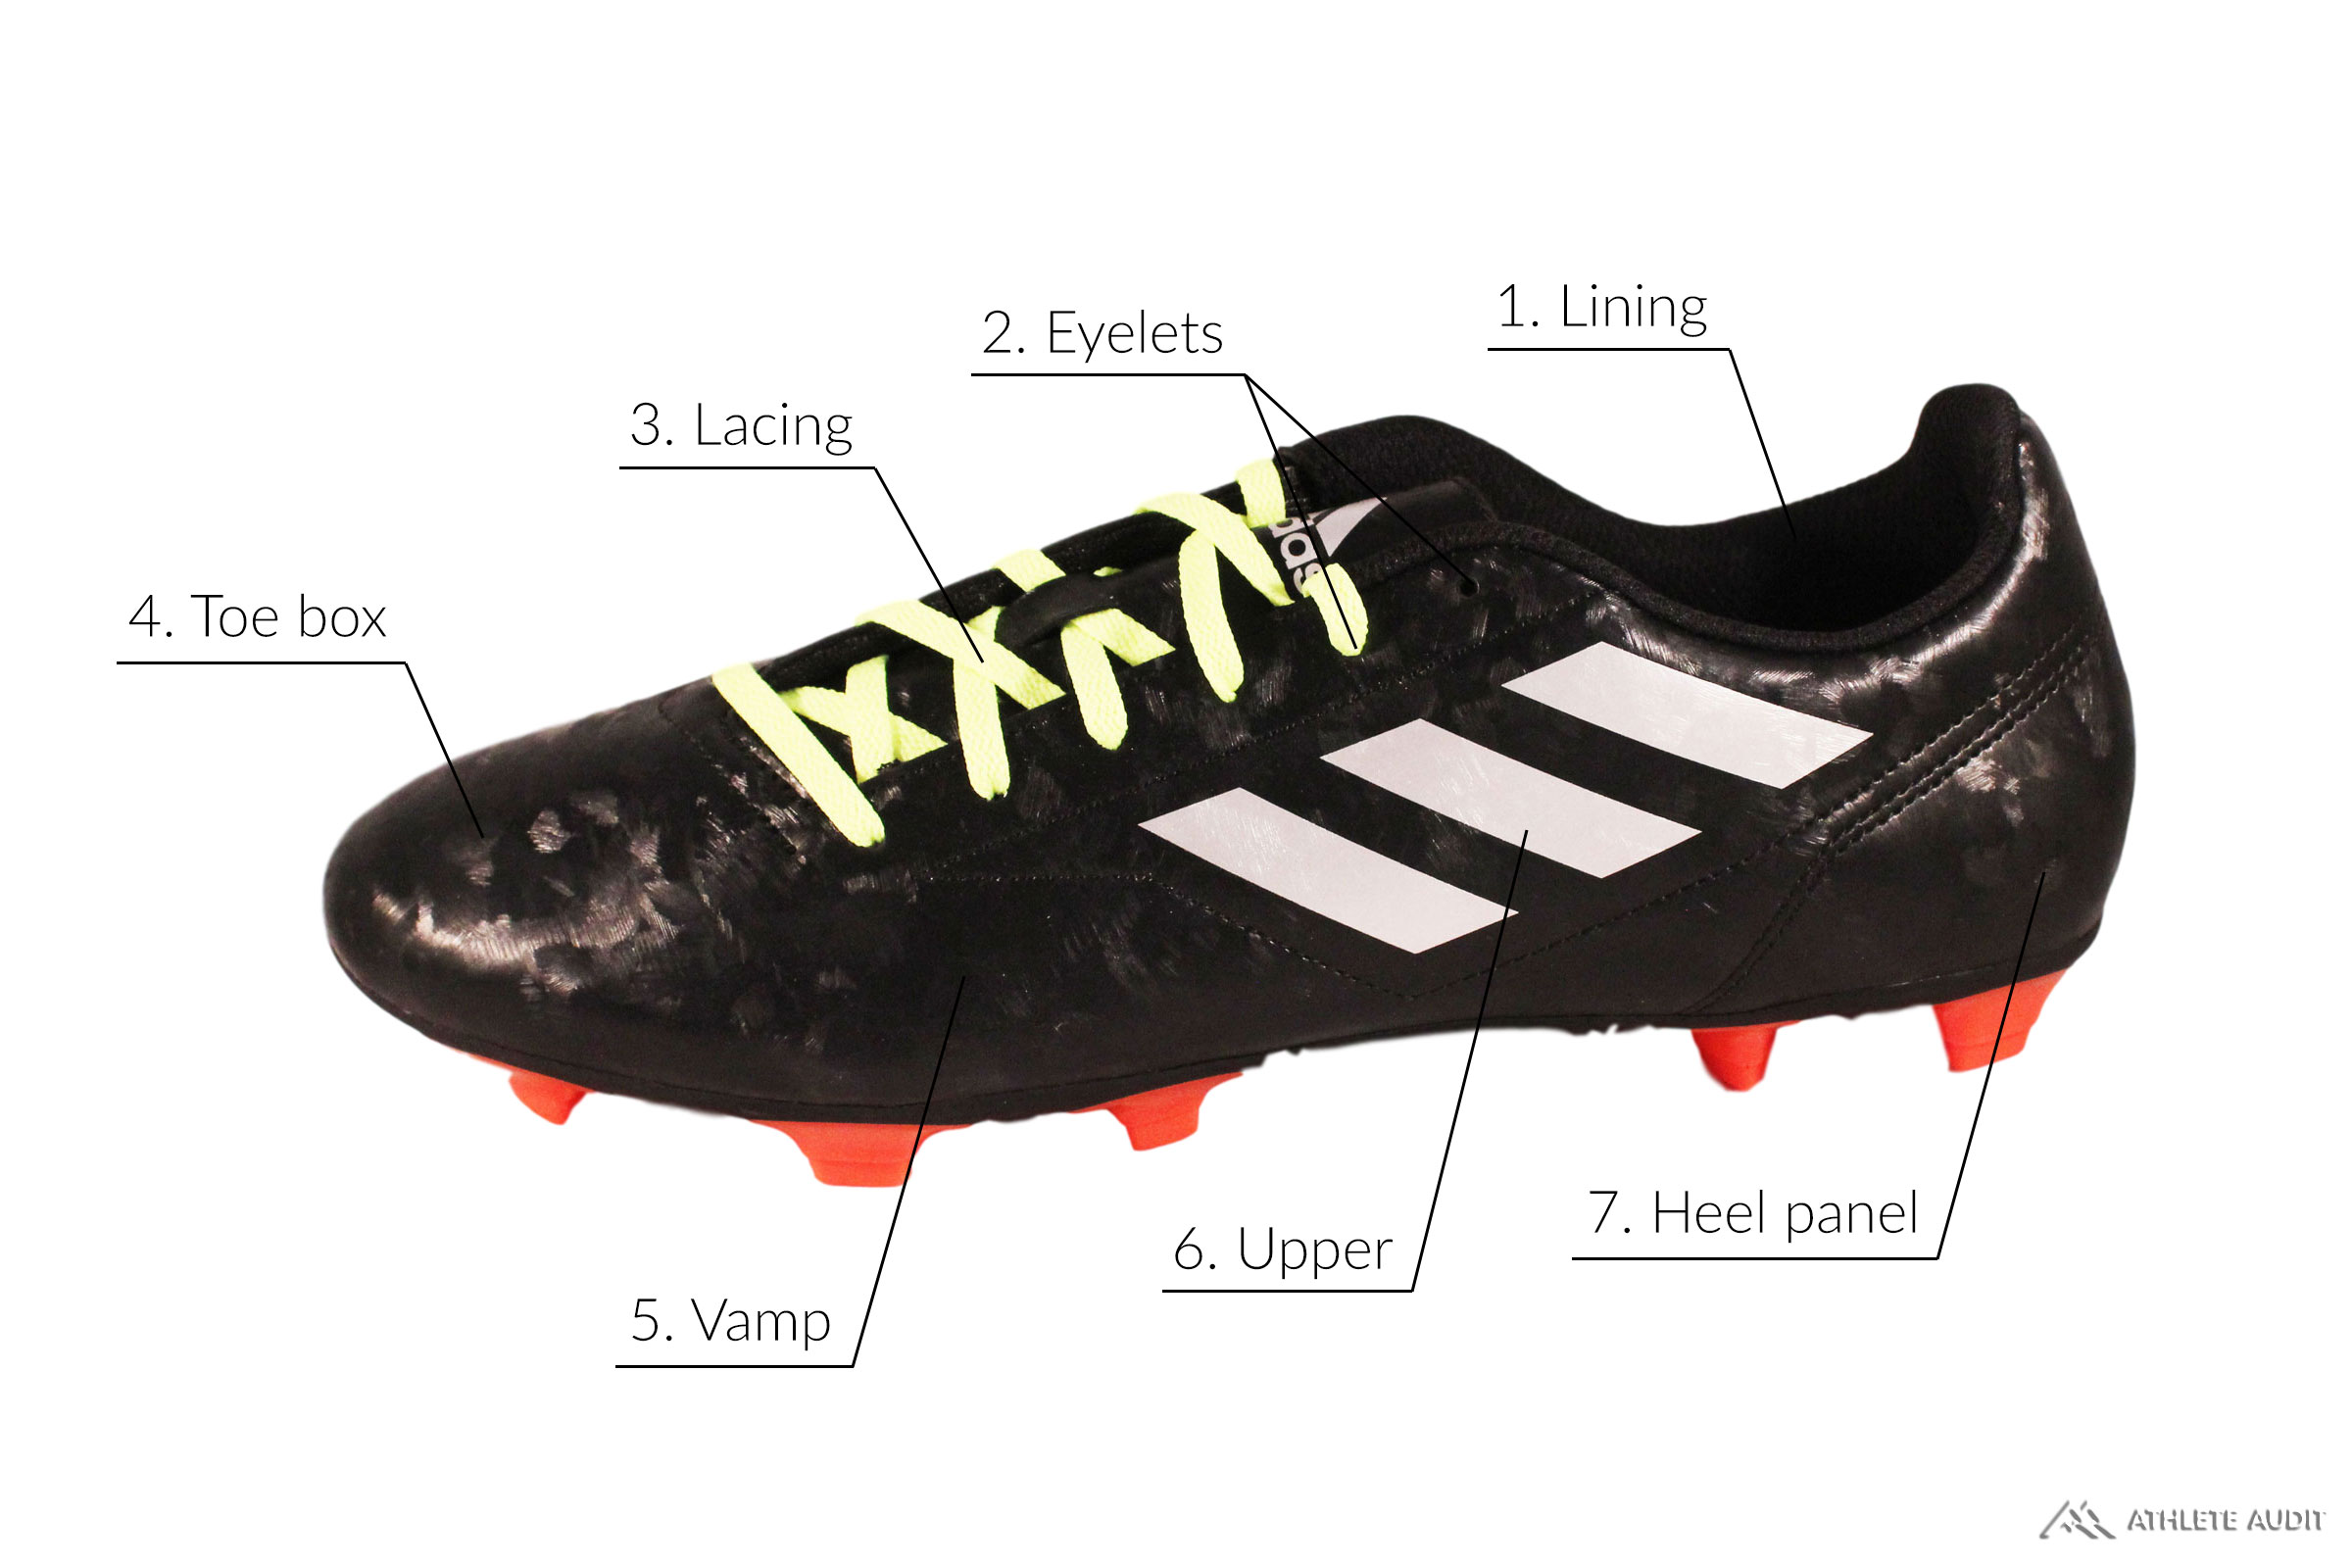 Parts of a Soccer Cleat - Outer - Anatomy of an Athletic Shoe - Athlete Audit